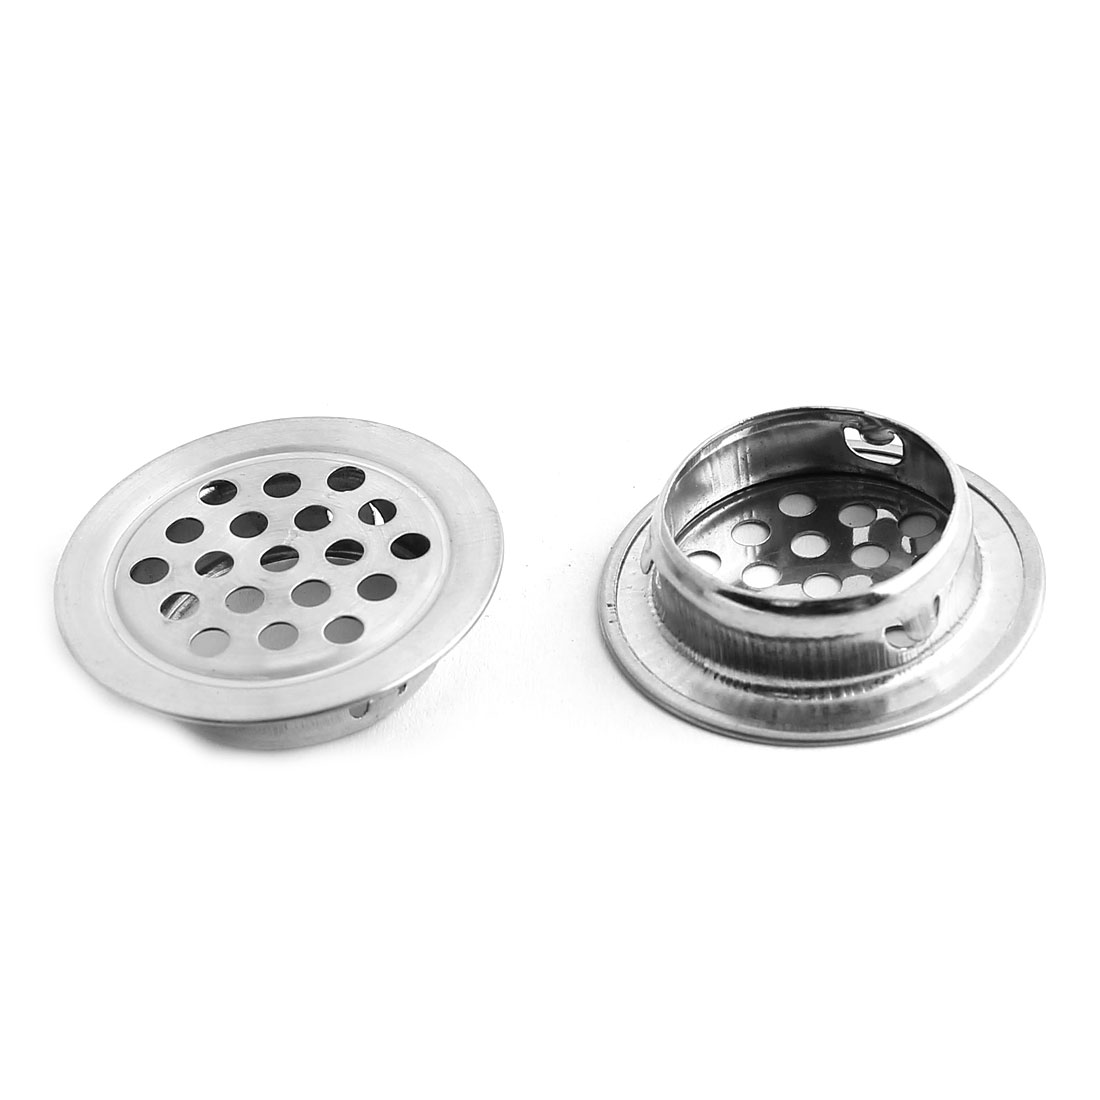 25mm Bottom Dia Round Flat Panel Cupboard Cabinet Air Vent Louver Cover 2pcs